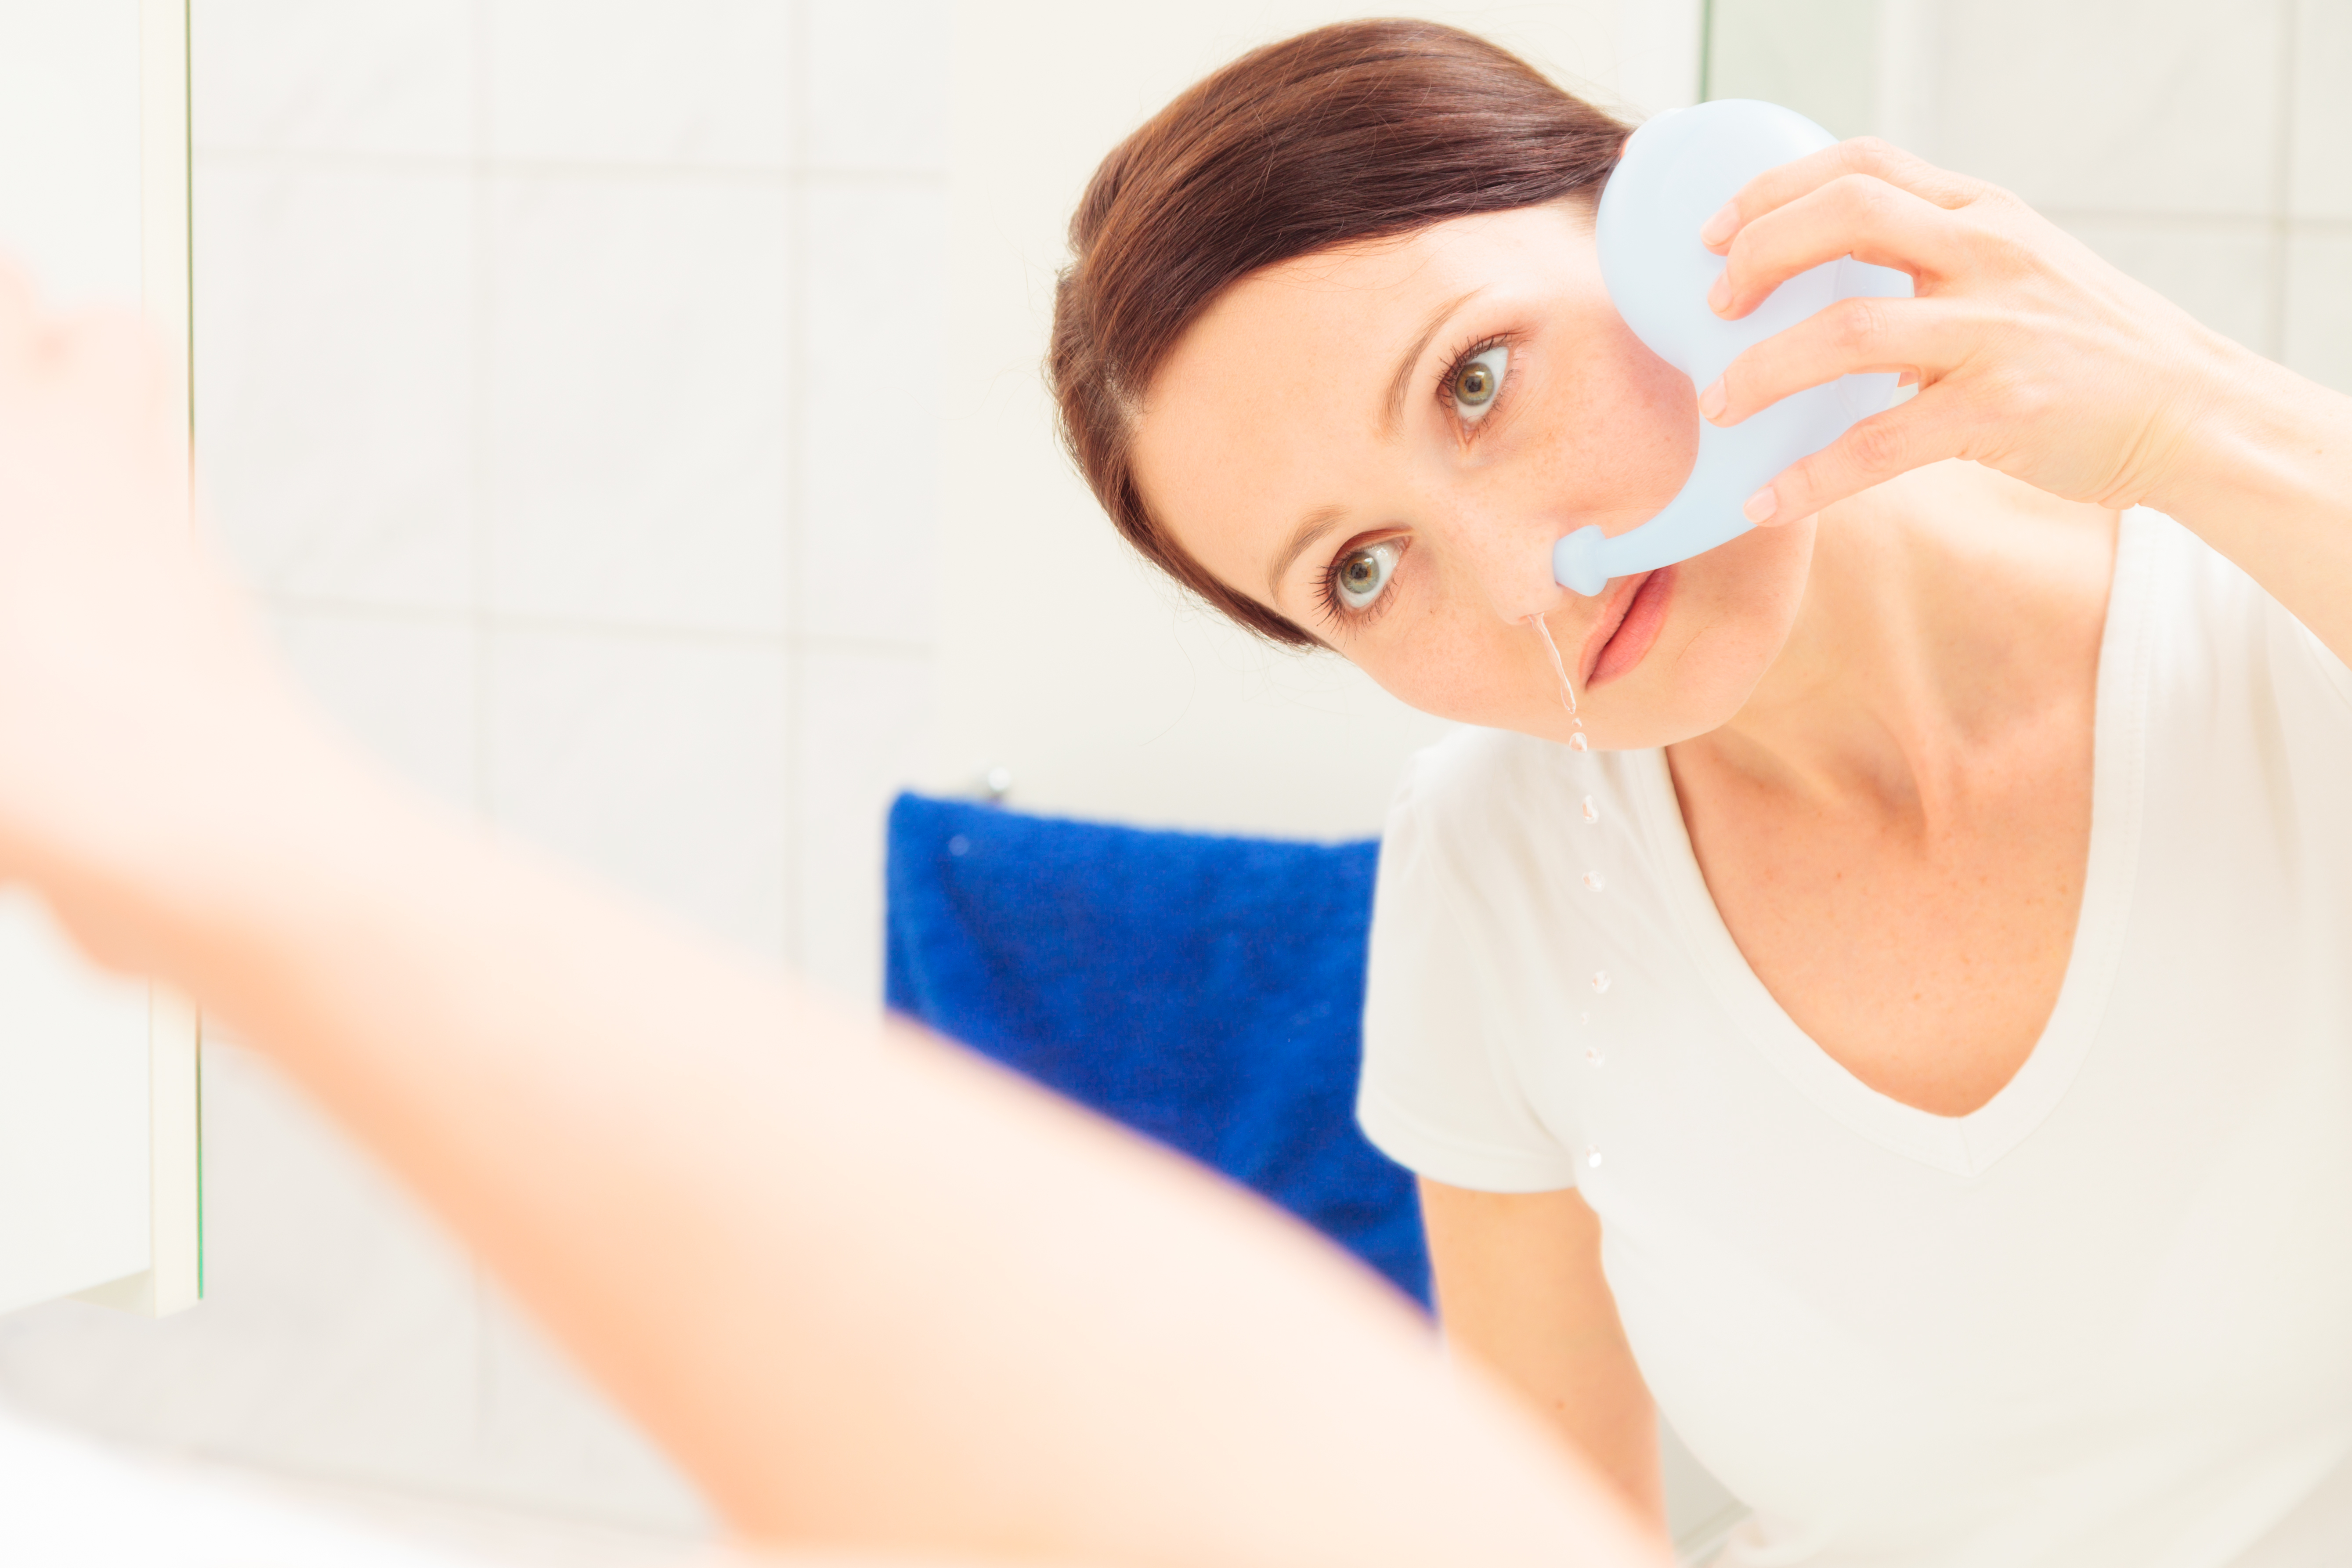 Woman Using Neti Pot For Nasal Irrigation After Rhinoplasty in Seattle, Bellevue, Kirkland